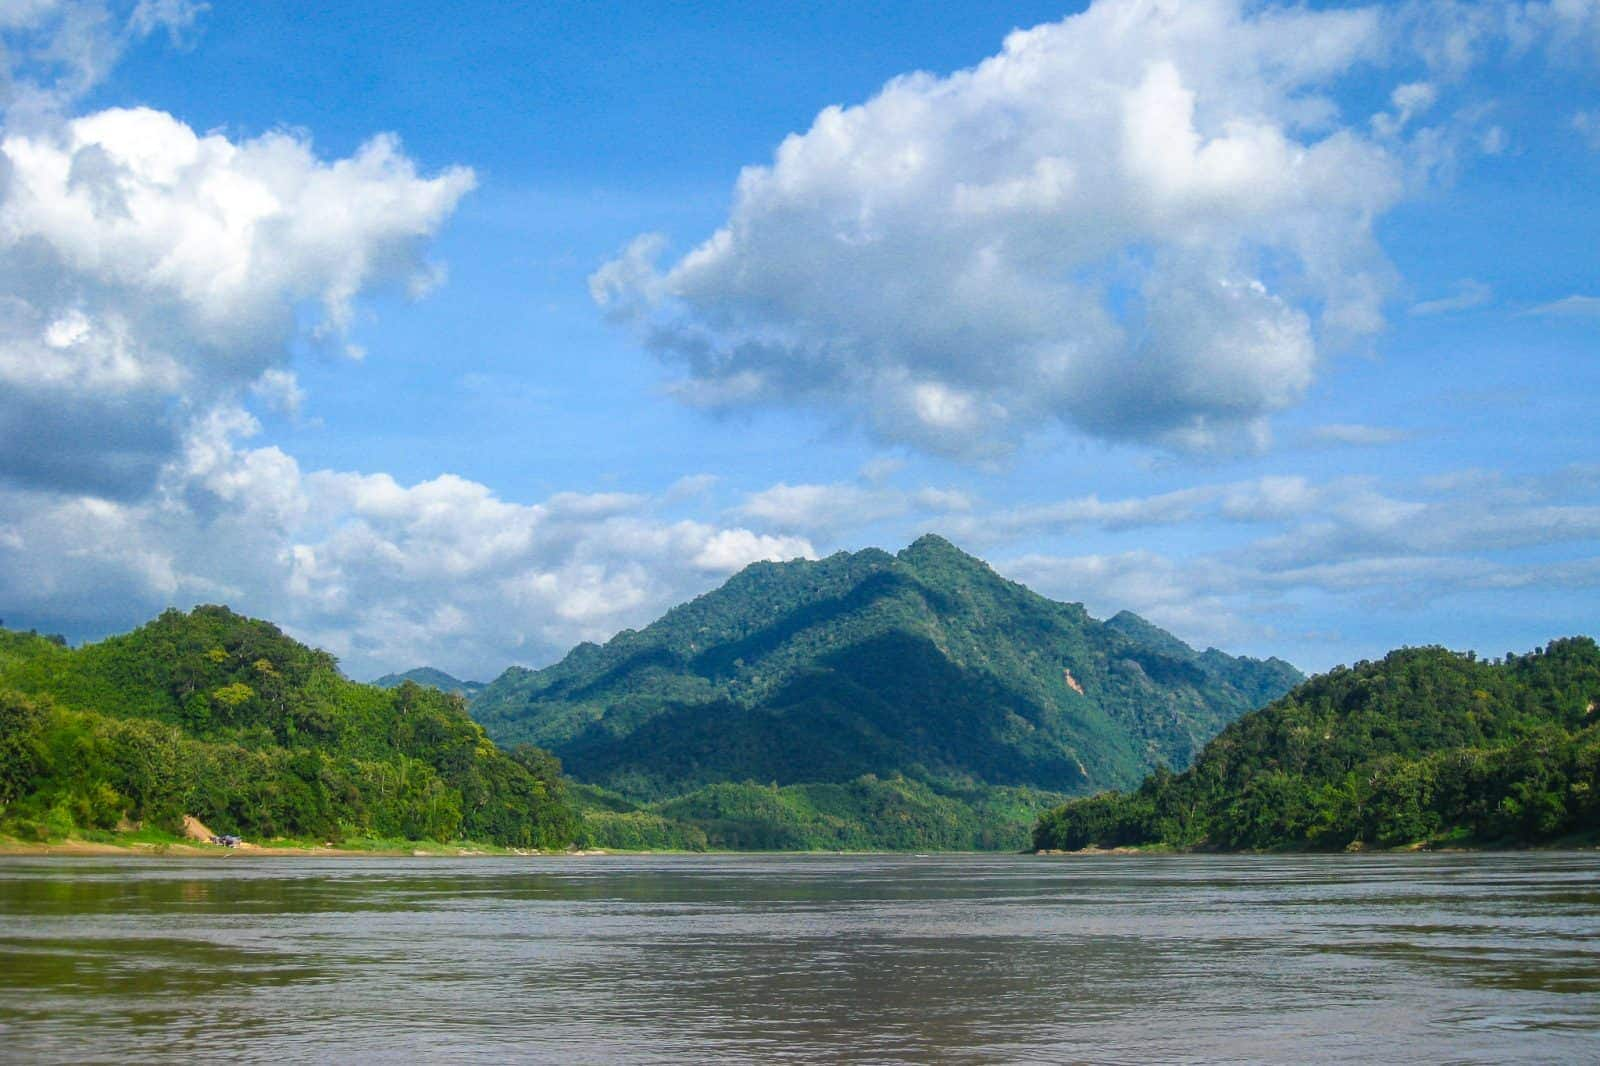 Scenic on the Mekong River